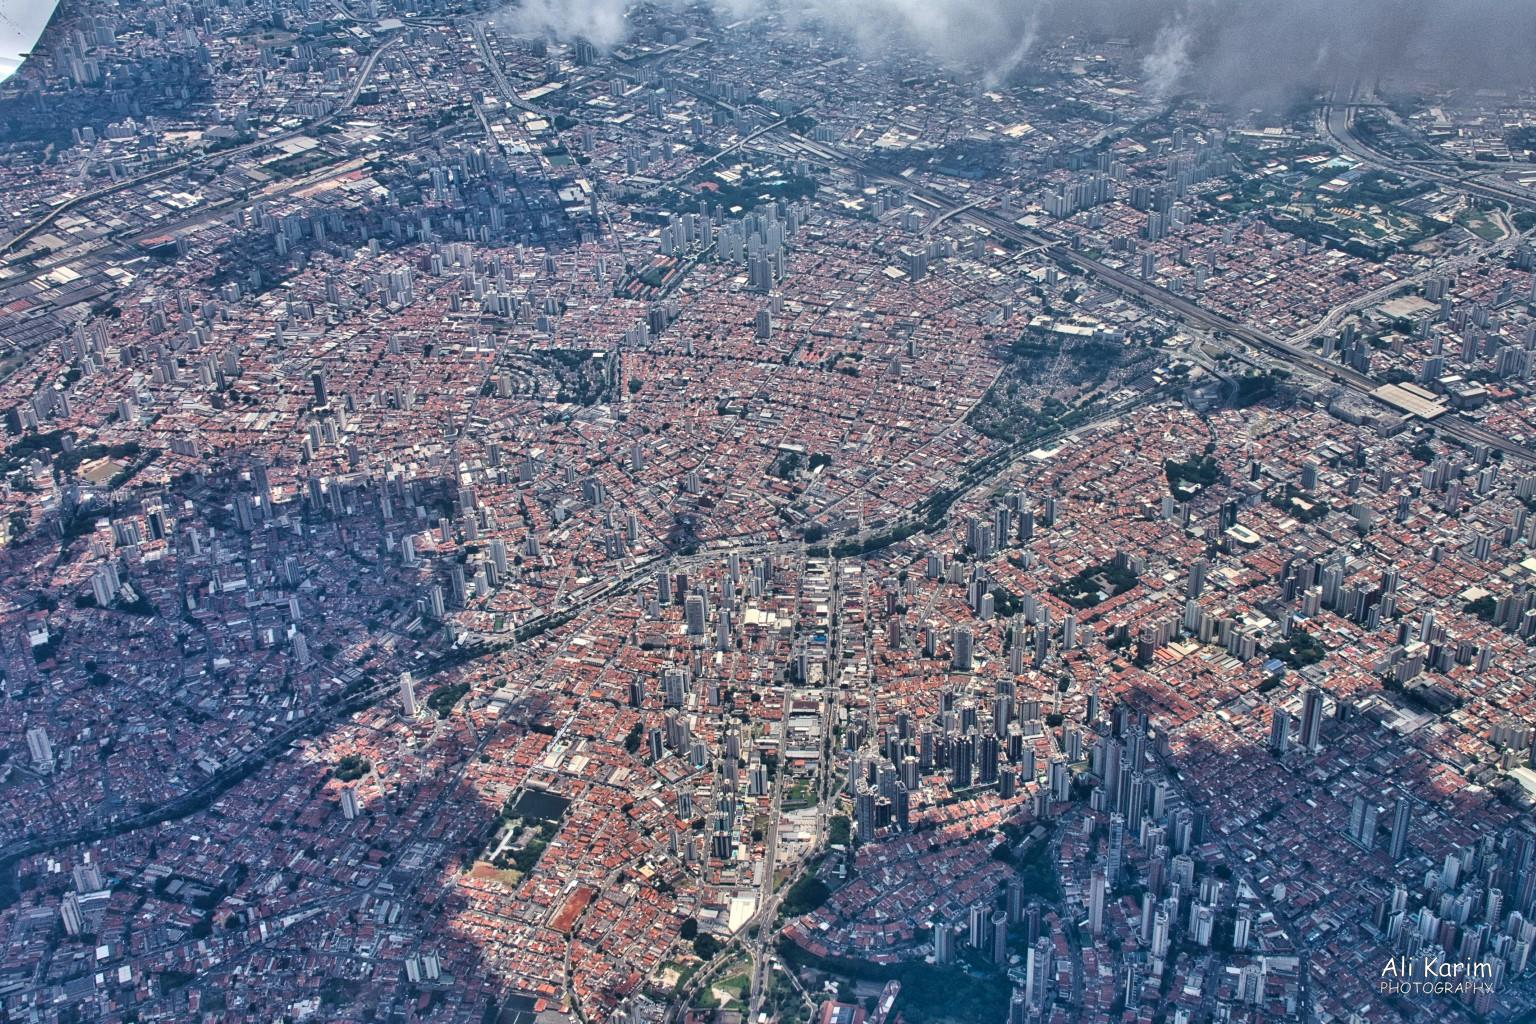 Florianópolis, Brazil São Paulo as seen on the flight from São Paulo to Floripa. The shaded area due to clouds makes for an interesting picture. This type of dense urban space went on for miles.